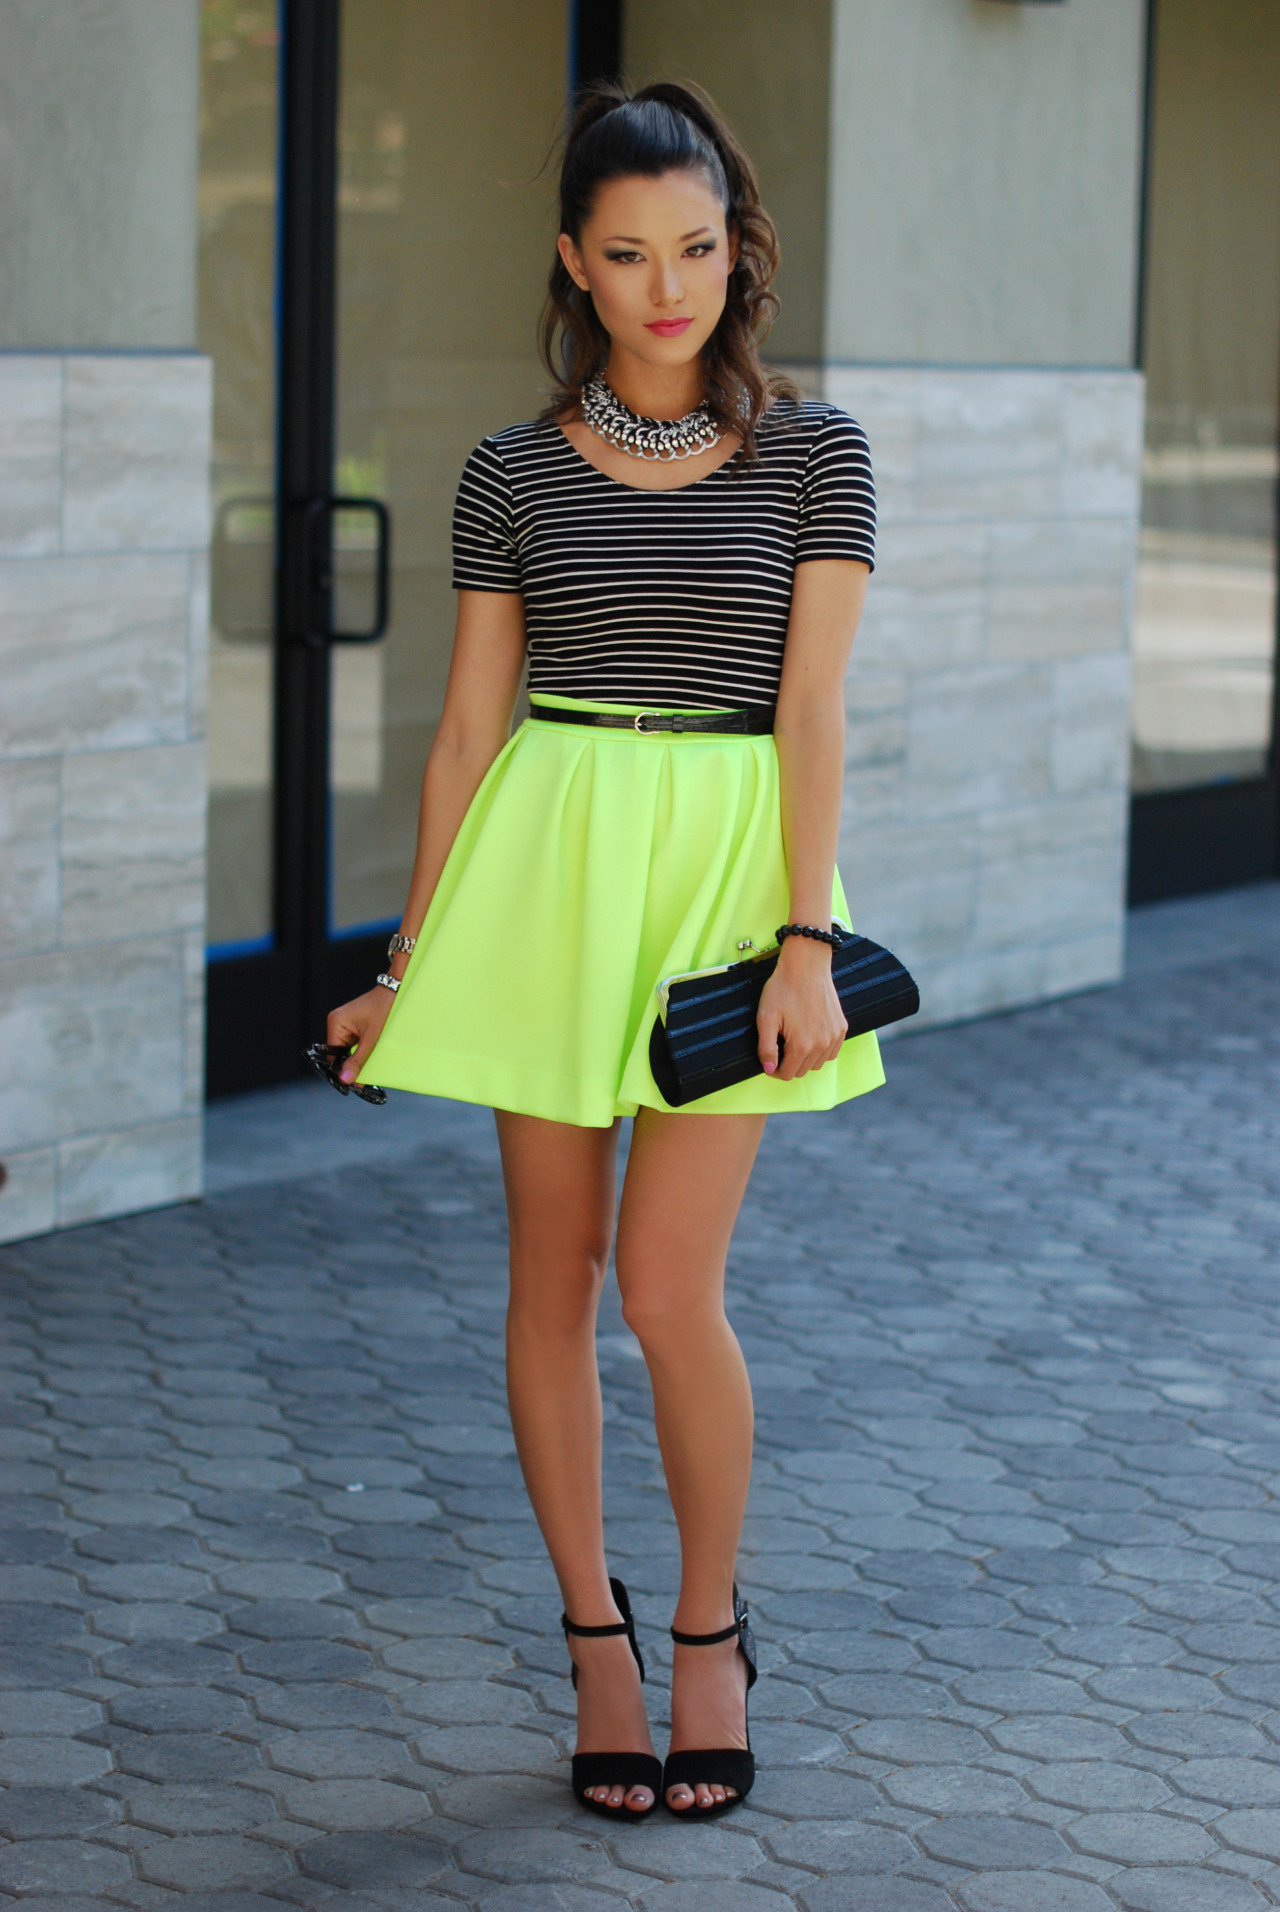 hapatime:  More > http://www.hapatime.com/2013/05/neon-stripes-and-sparkles.html  She is so pretty!!